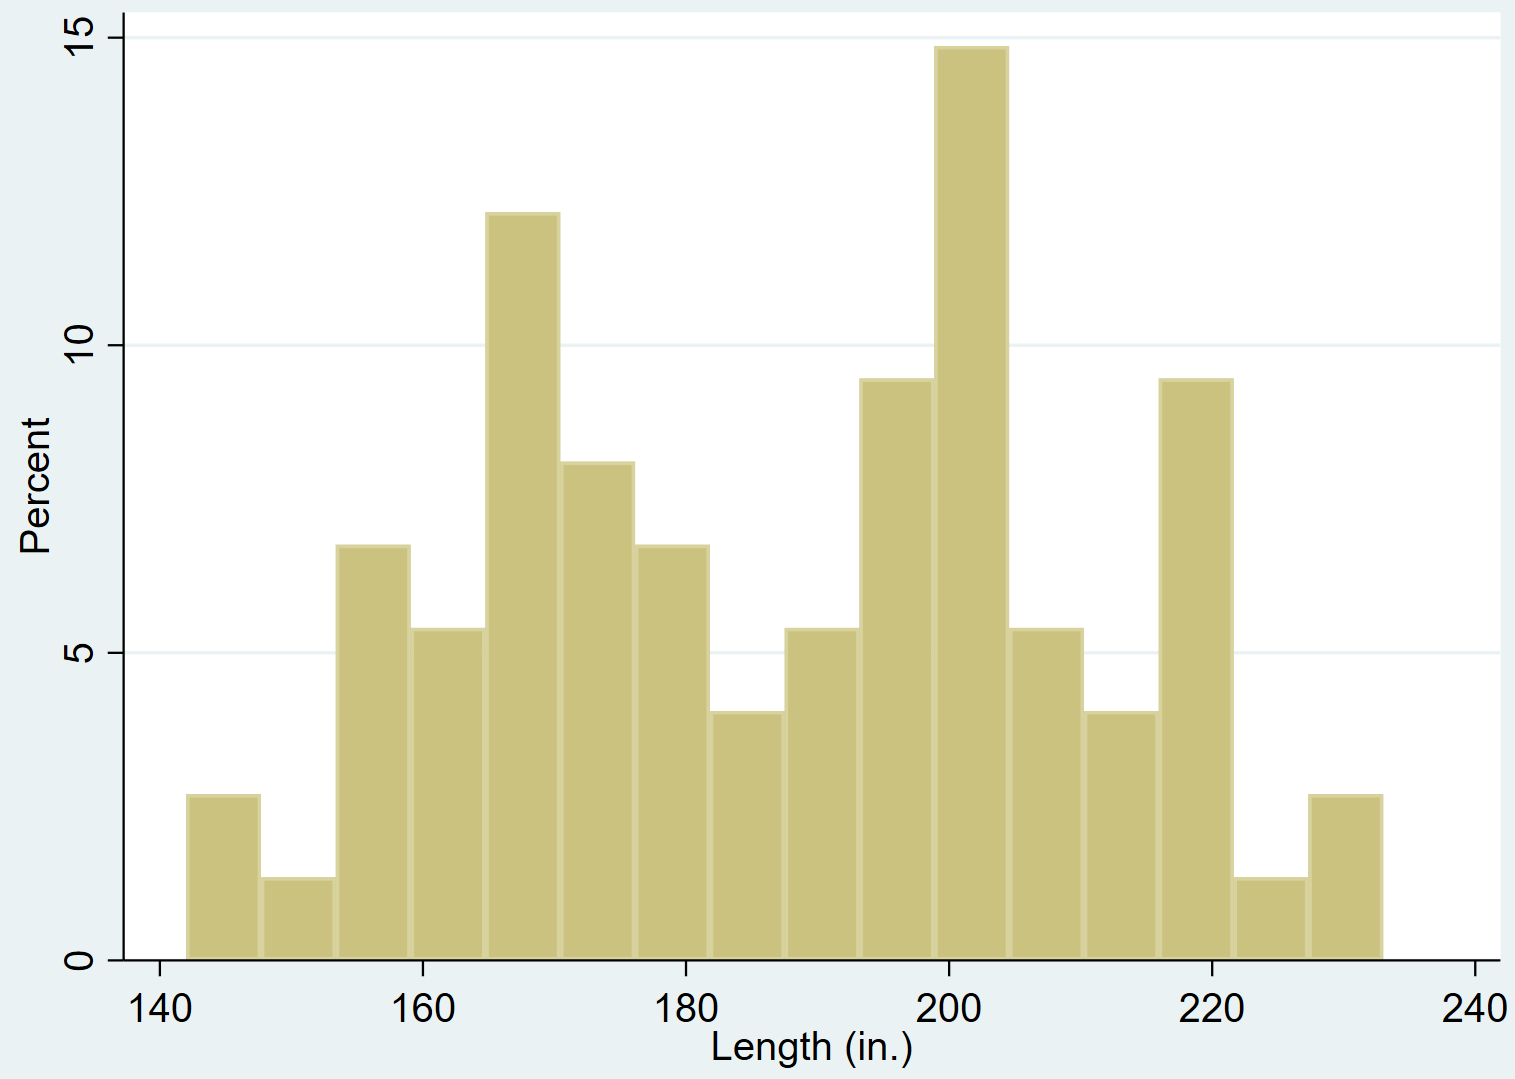 Histogram in Stata with 16 bins